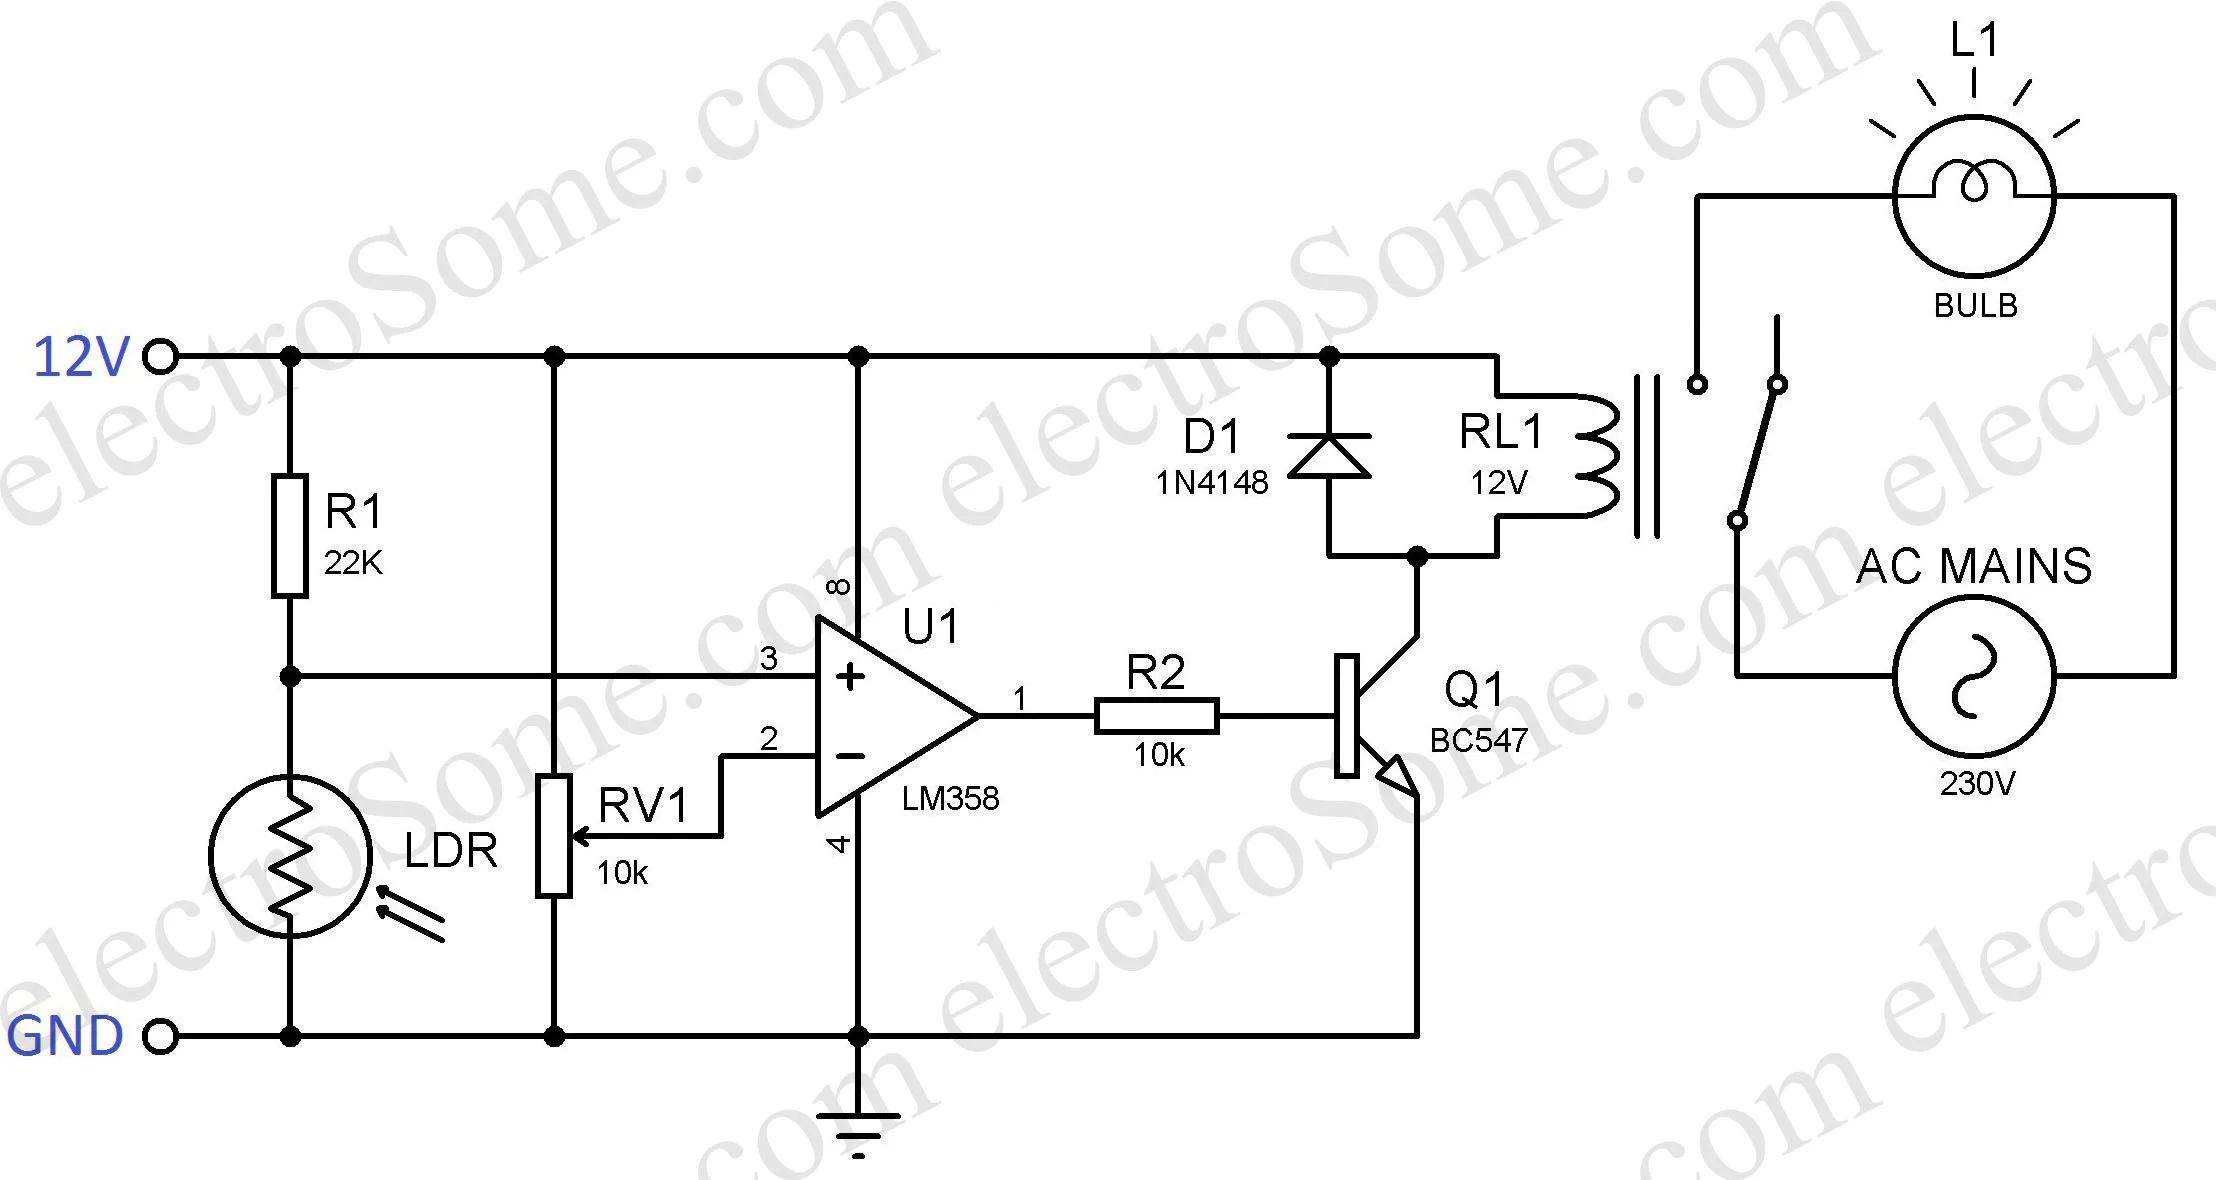 the circuit schematic diagram of table lamp using ic 555